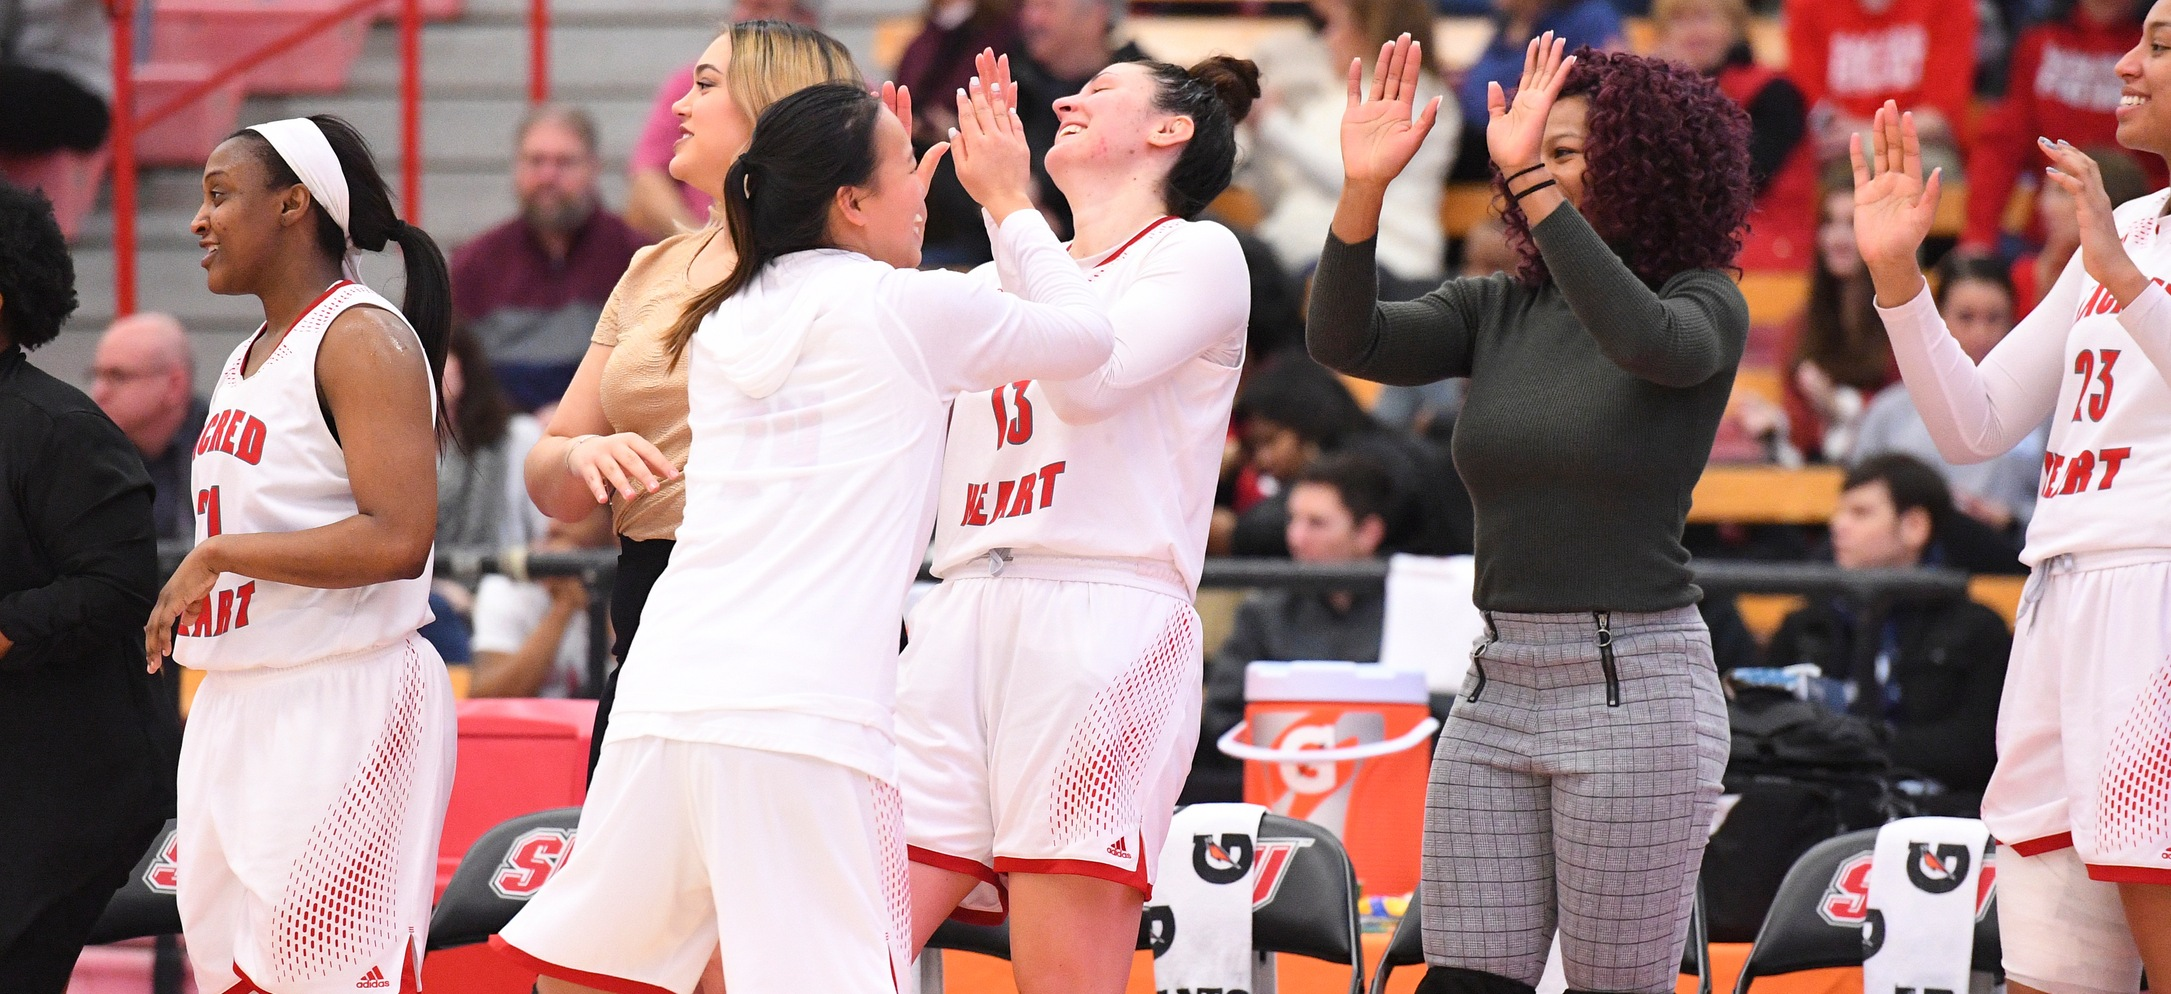 No. 2 Women's Basketball Hosts No. 7 Wagner in NEC Quarterfinal on Monday Night